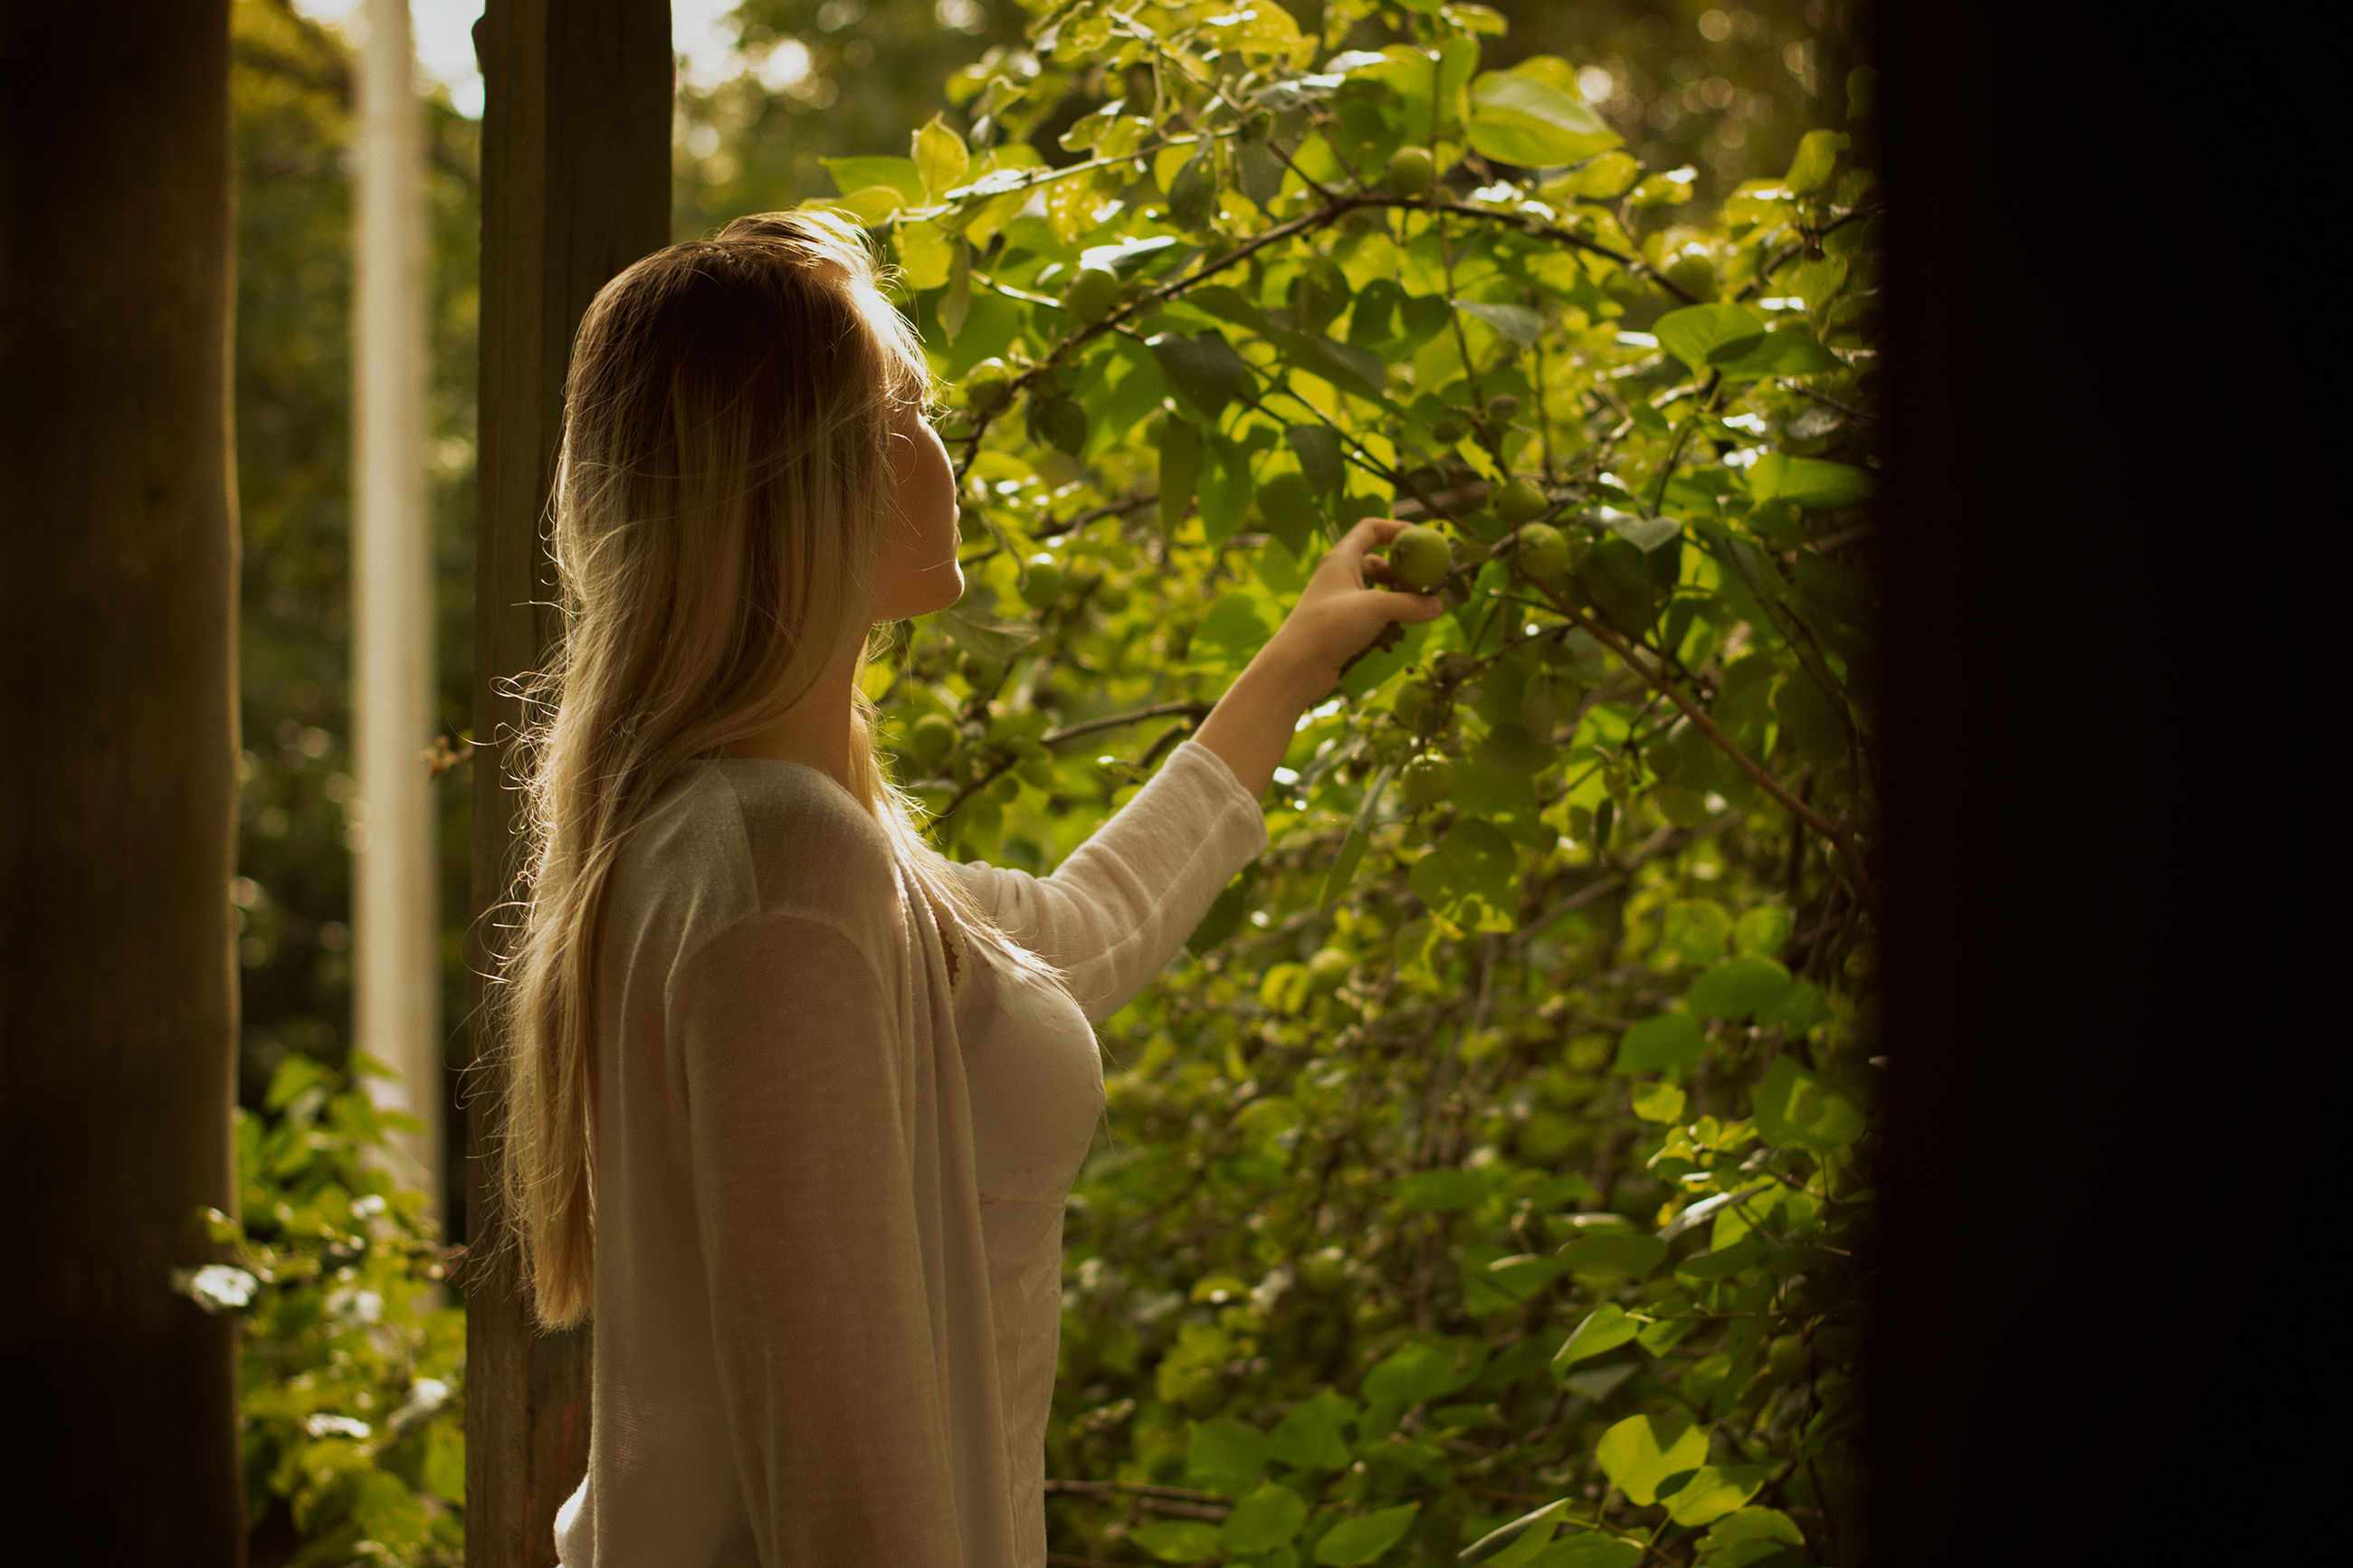 one person, plant, women, blond hair, adult, real people, hair, tree, growth, waist up, nature, hairstyle, lifestyles, standing, day, rear view, casual clothing, leisure activity, holding, outdoors